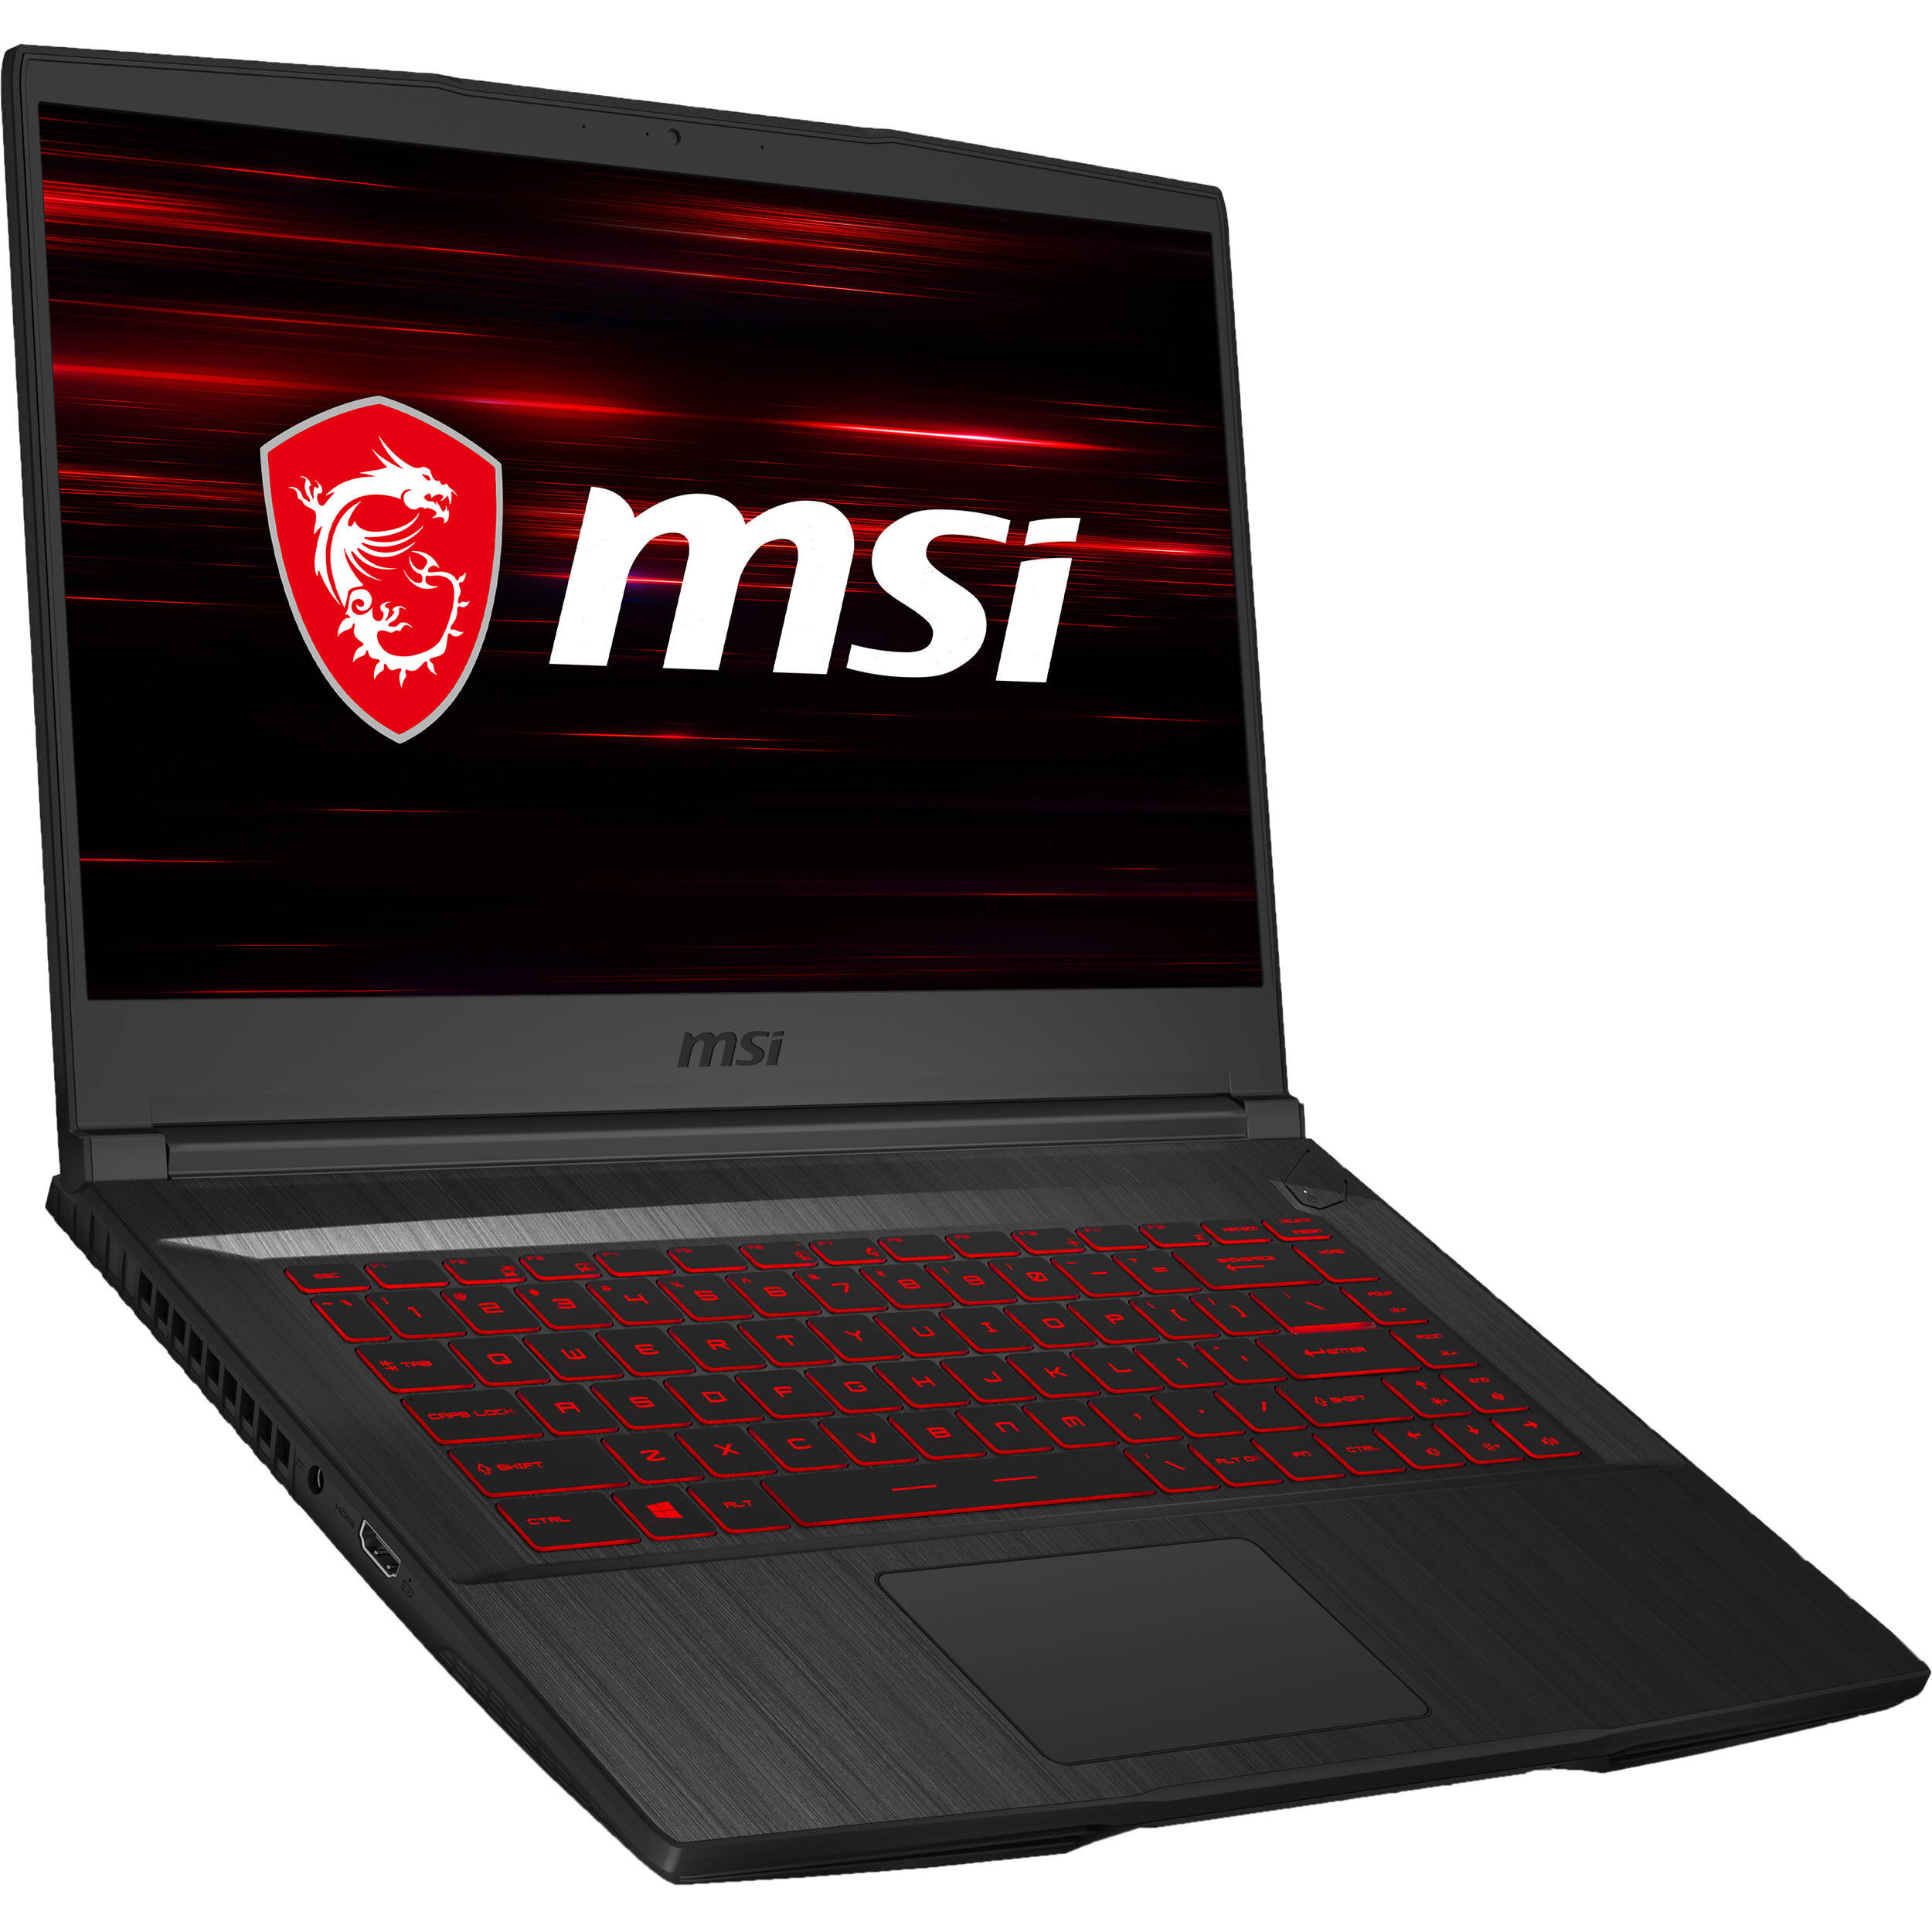 Msi Gf65 Thin Review A Gaming Laptop Now With Intel 10 Th Gen Cpu E Money Chat